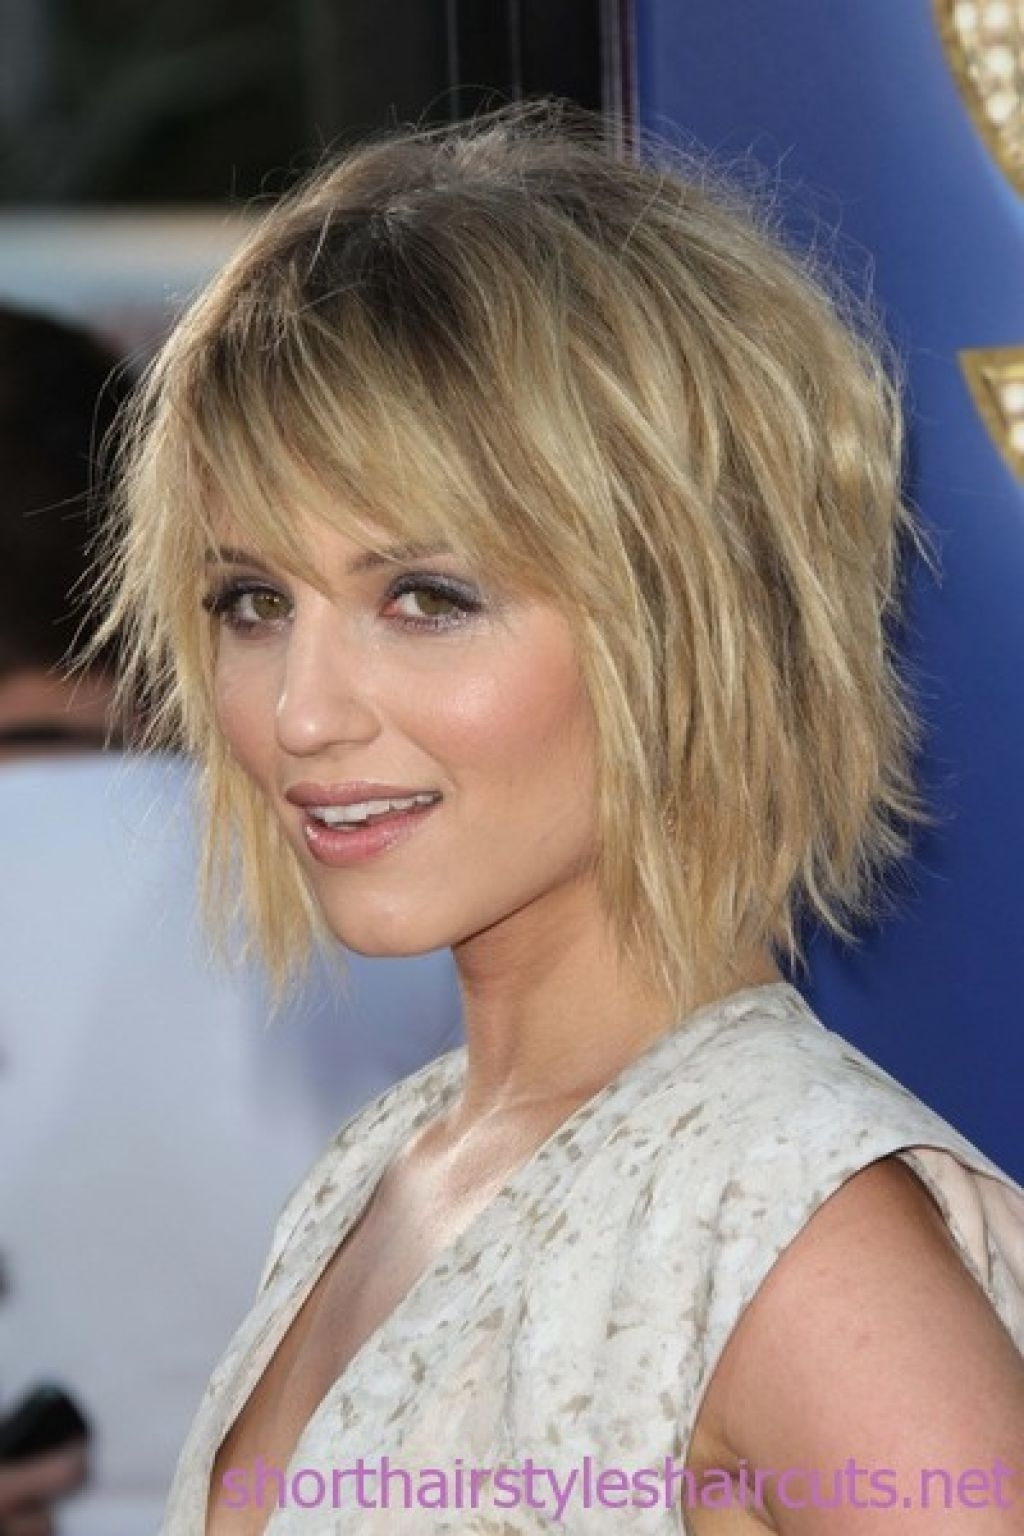 Short Choppy Layered Hairstyles For Fine Hair – 2015 Hairstyles With Regard To Recent Shaggy Bob Hairstyles For Fine Hair (View 2 of 15)